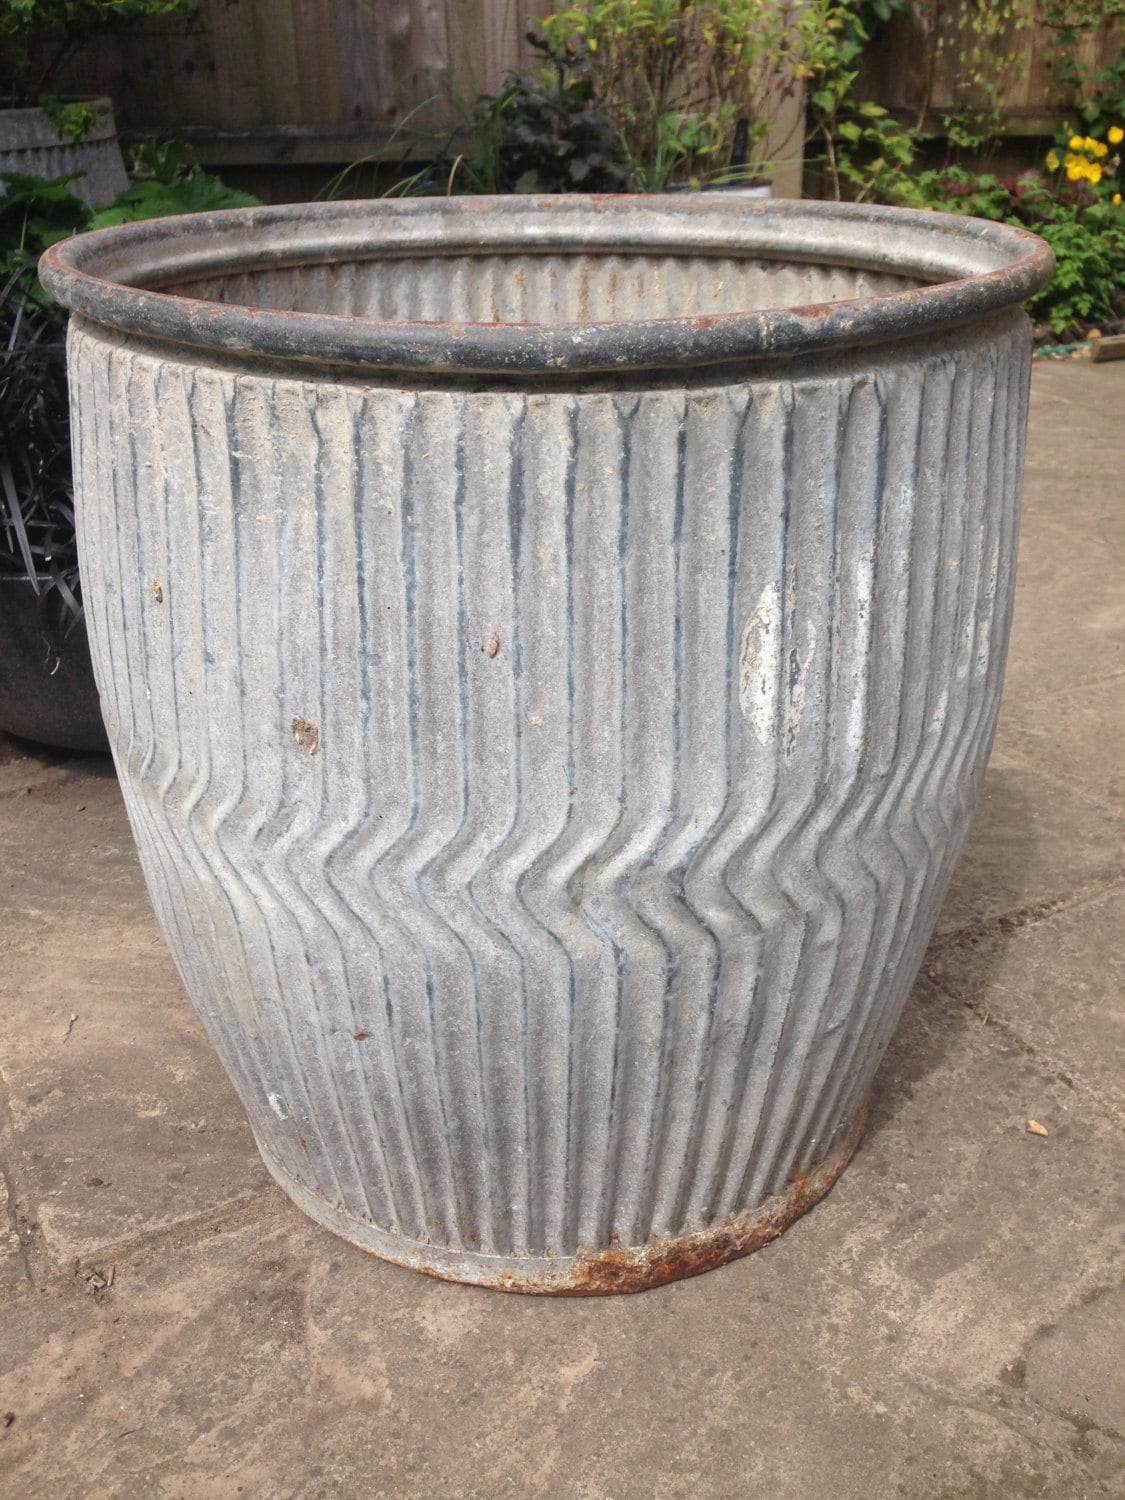 Large Wash Tub : Wash tub dolly tub large plant pot plant container